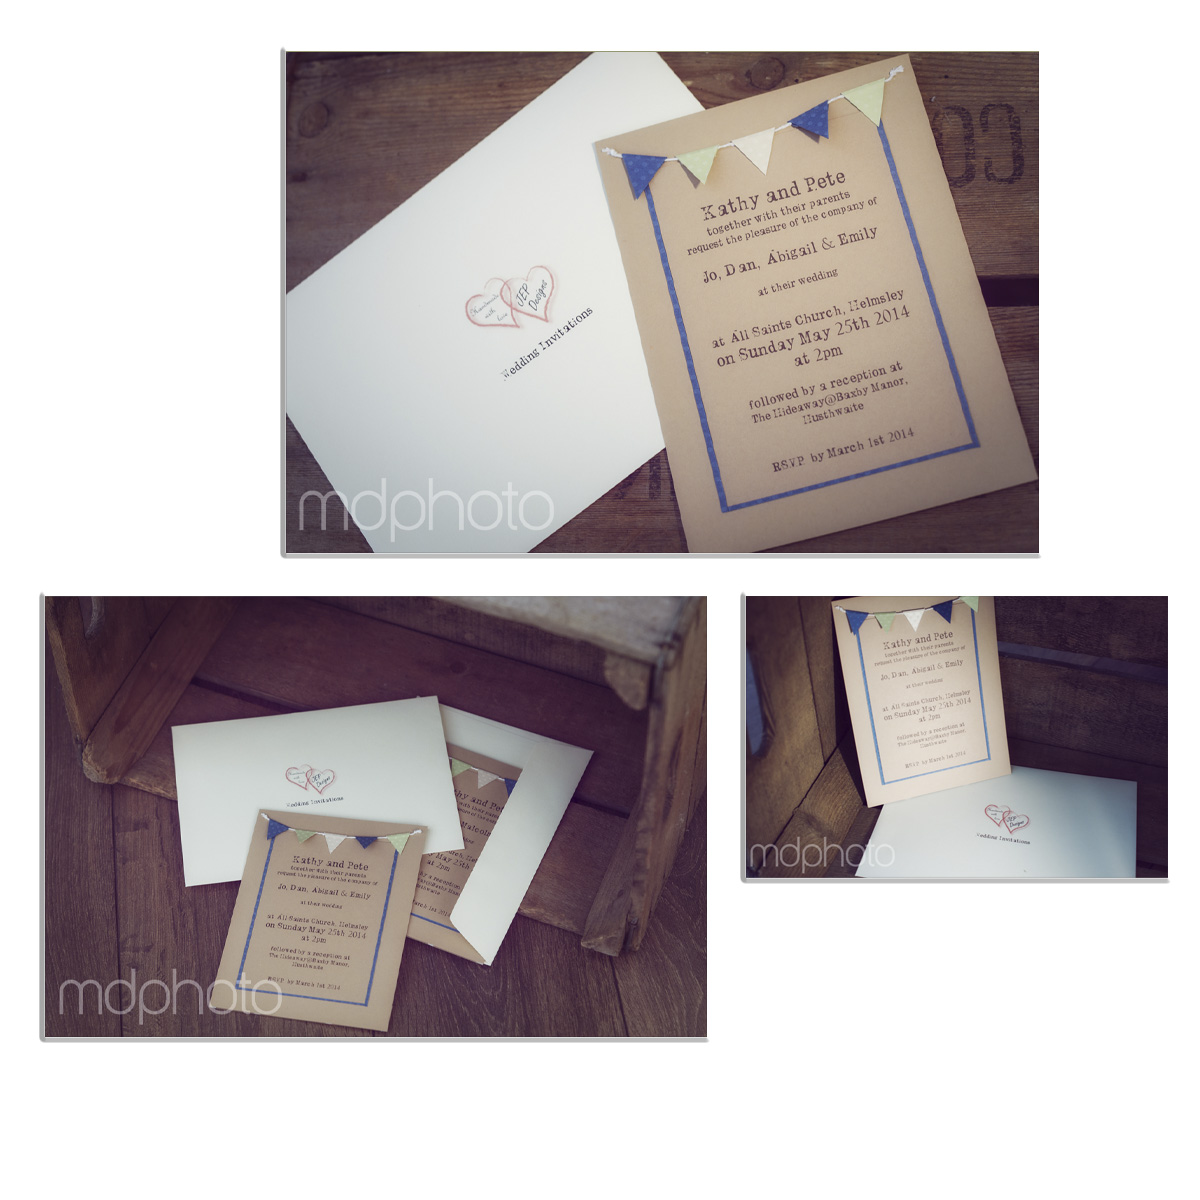 Wedding_Invite_Photo_Shoot_Ingleby_Barwick_Yarm_Wedding_mdphoto